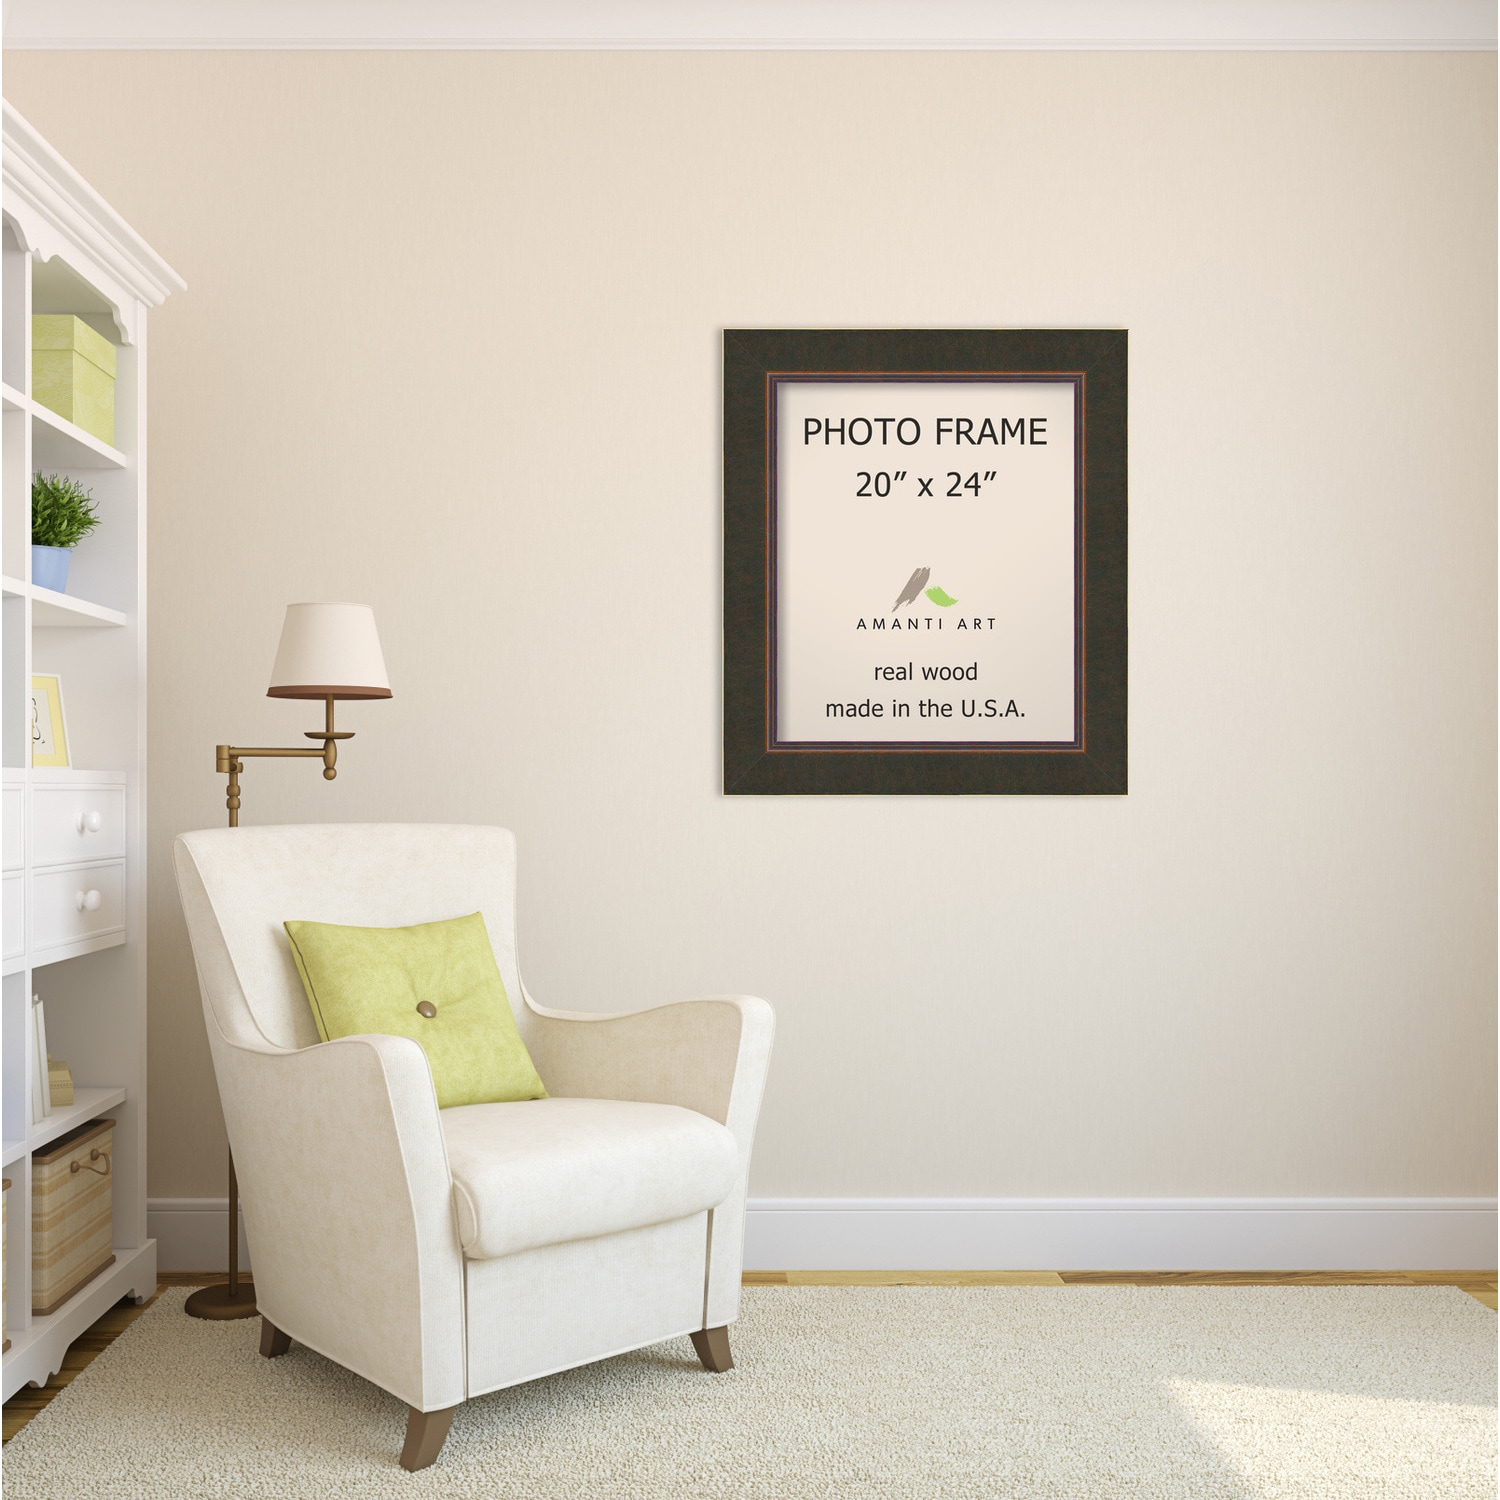 Milano Bronze Photo Frame 26 x 30-inch - Free Shipping Today ...